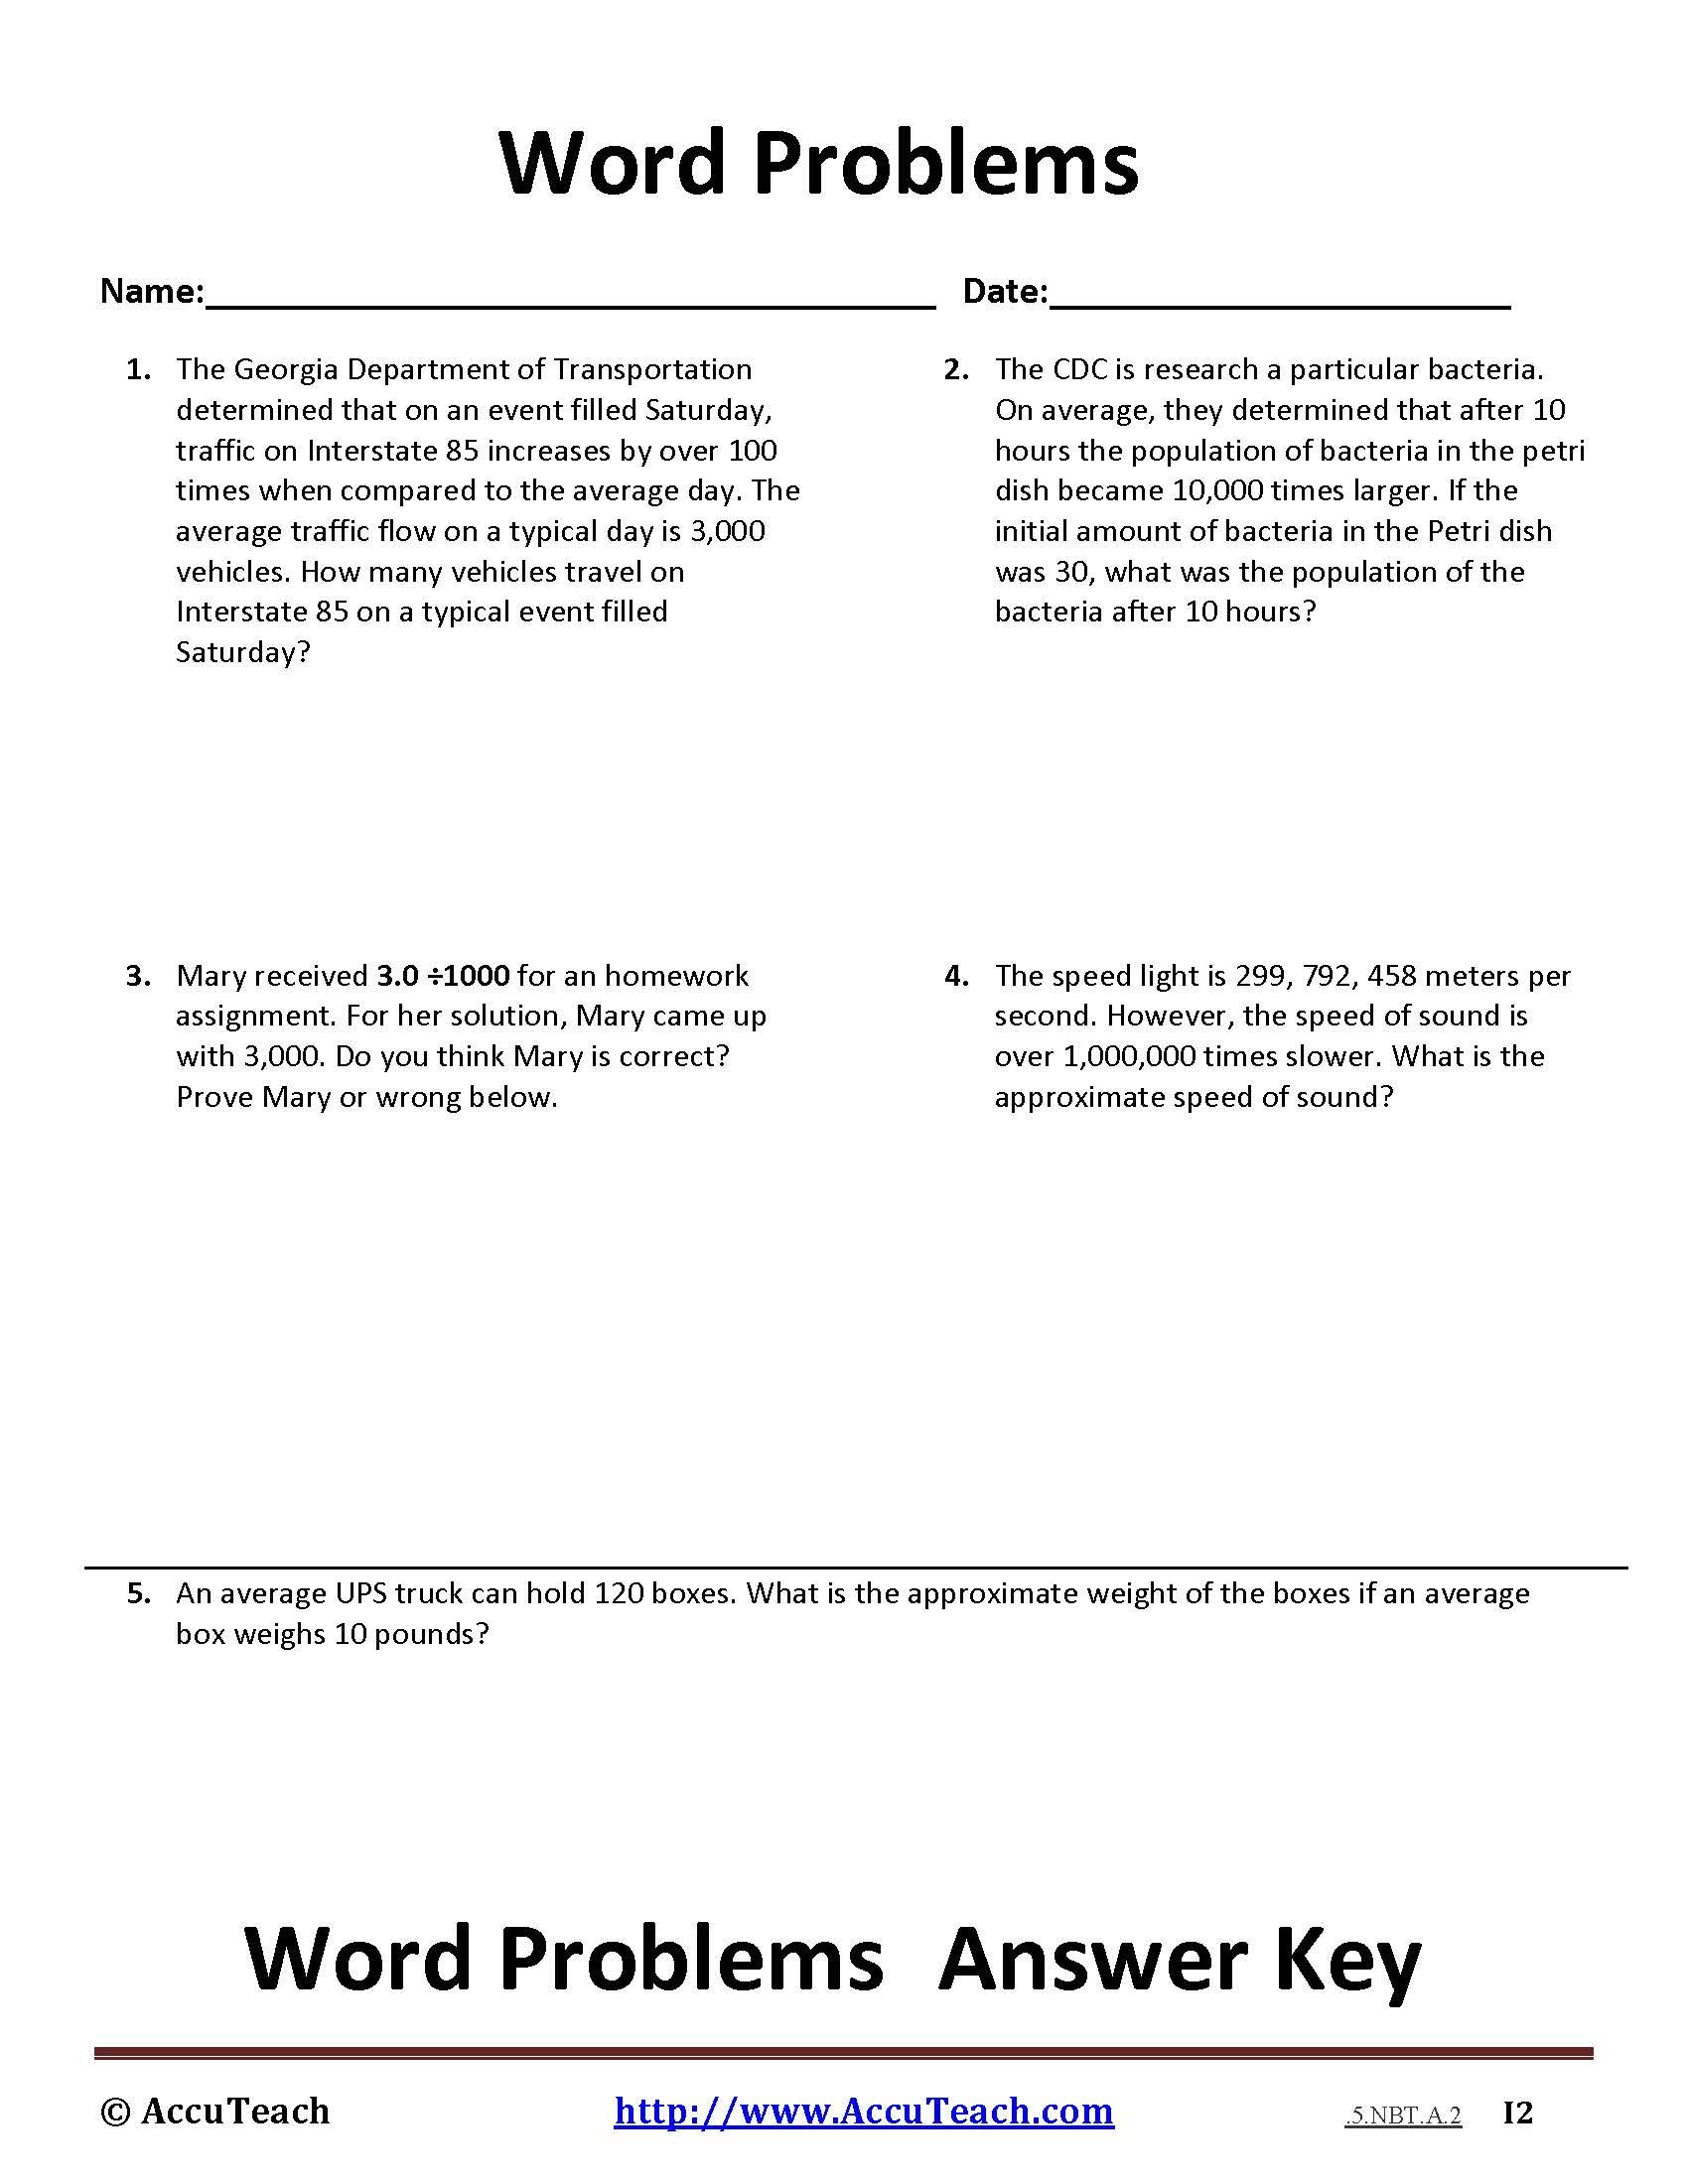 Worksheets Math Worksheets For 5th Grade Word Problems 1 powers of ten word problem 5 nbt a 2 page school pinterest these problems are designed to assess students knowledge story more than just math worksheets the